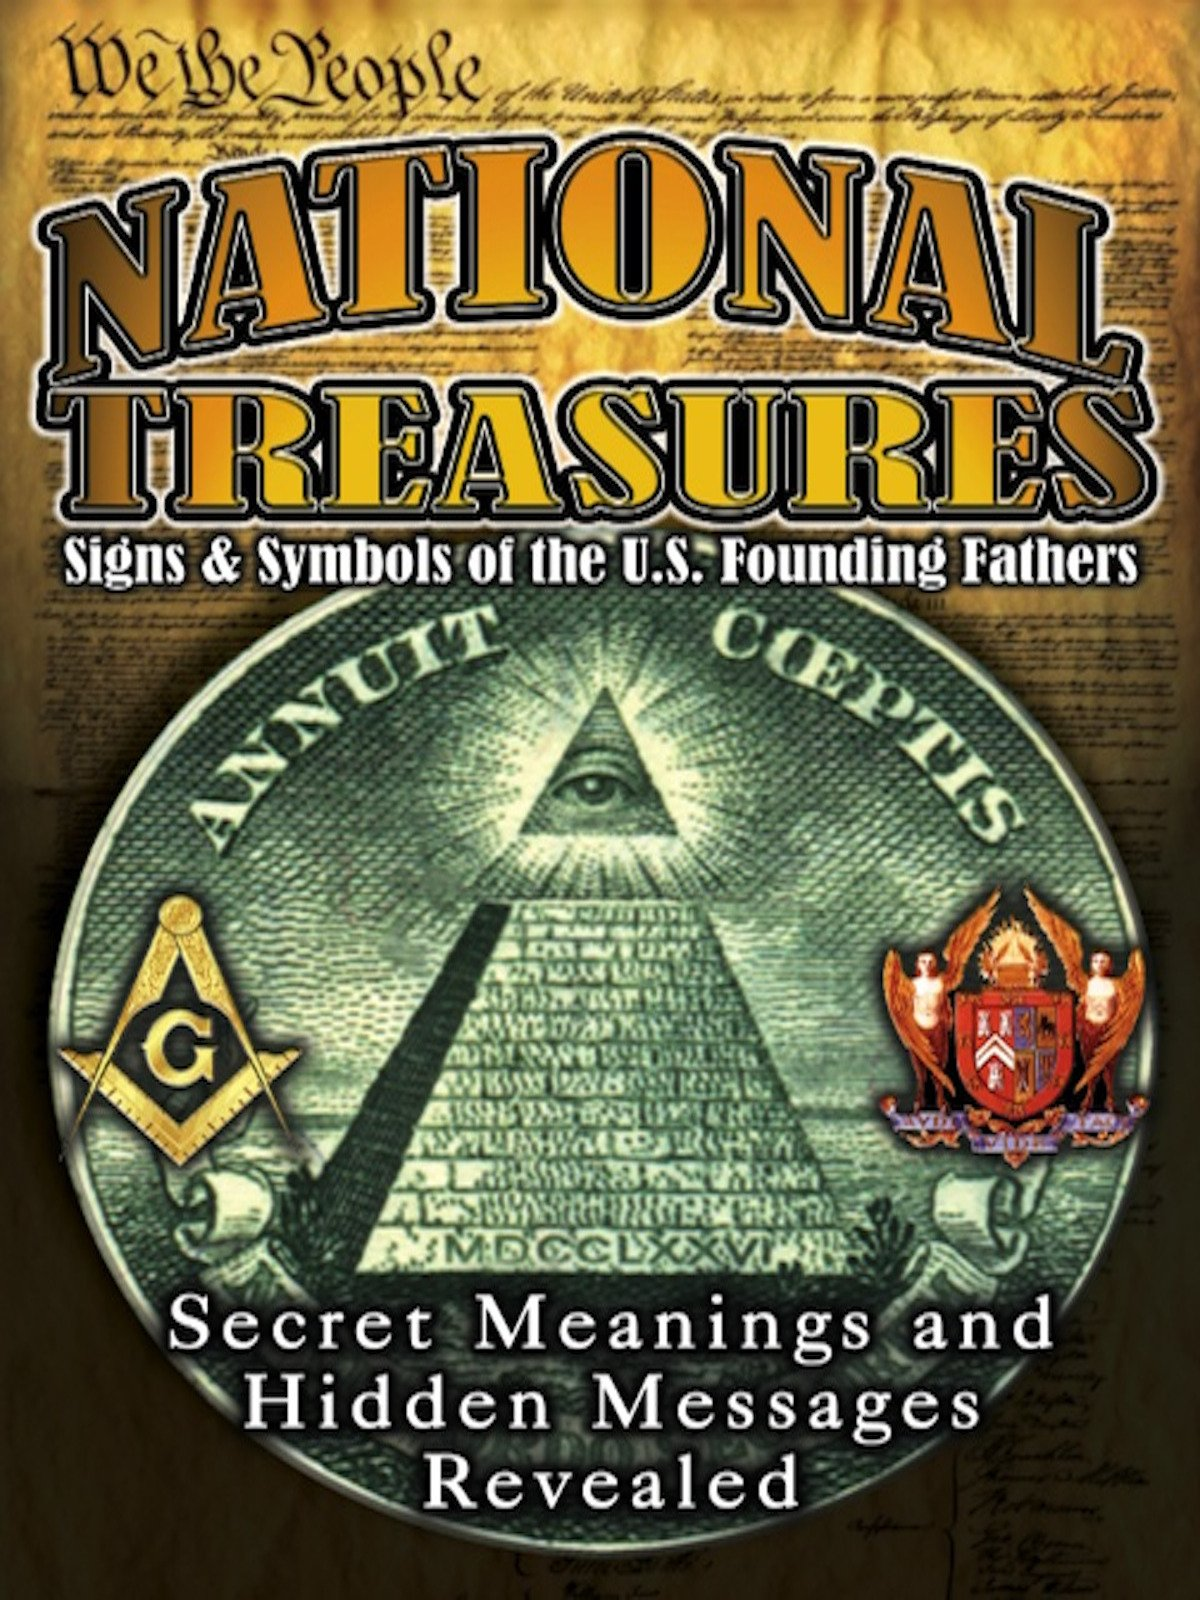 National Treasures - Secret Signs & Symbols of the U.S. Founding Fathers on Amazon Prime Video UK